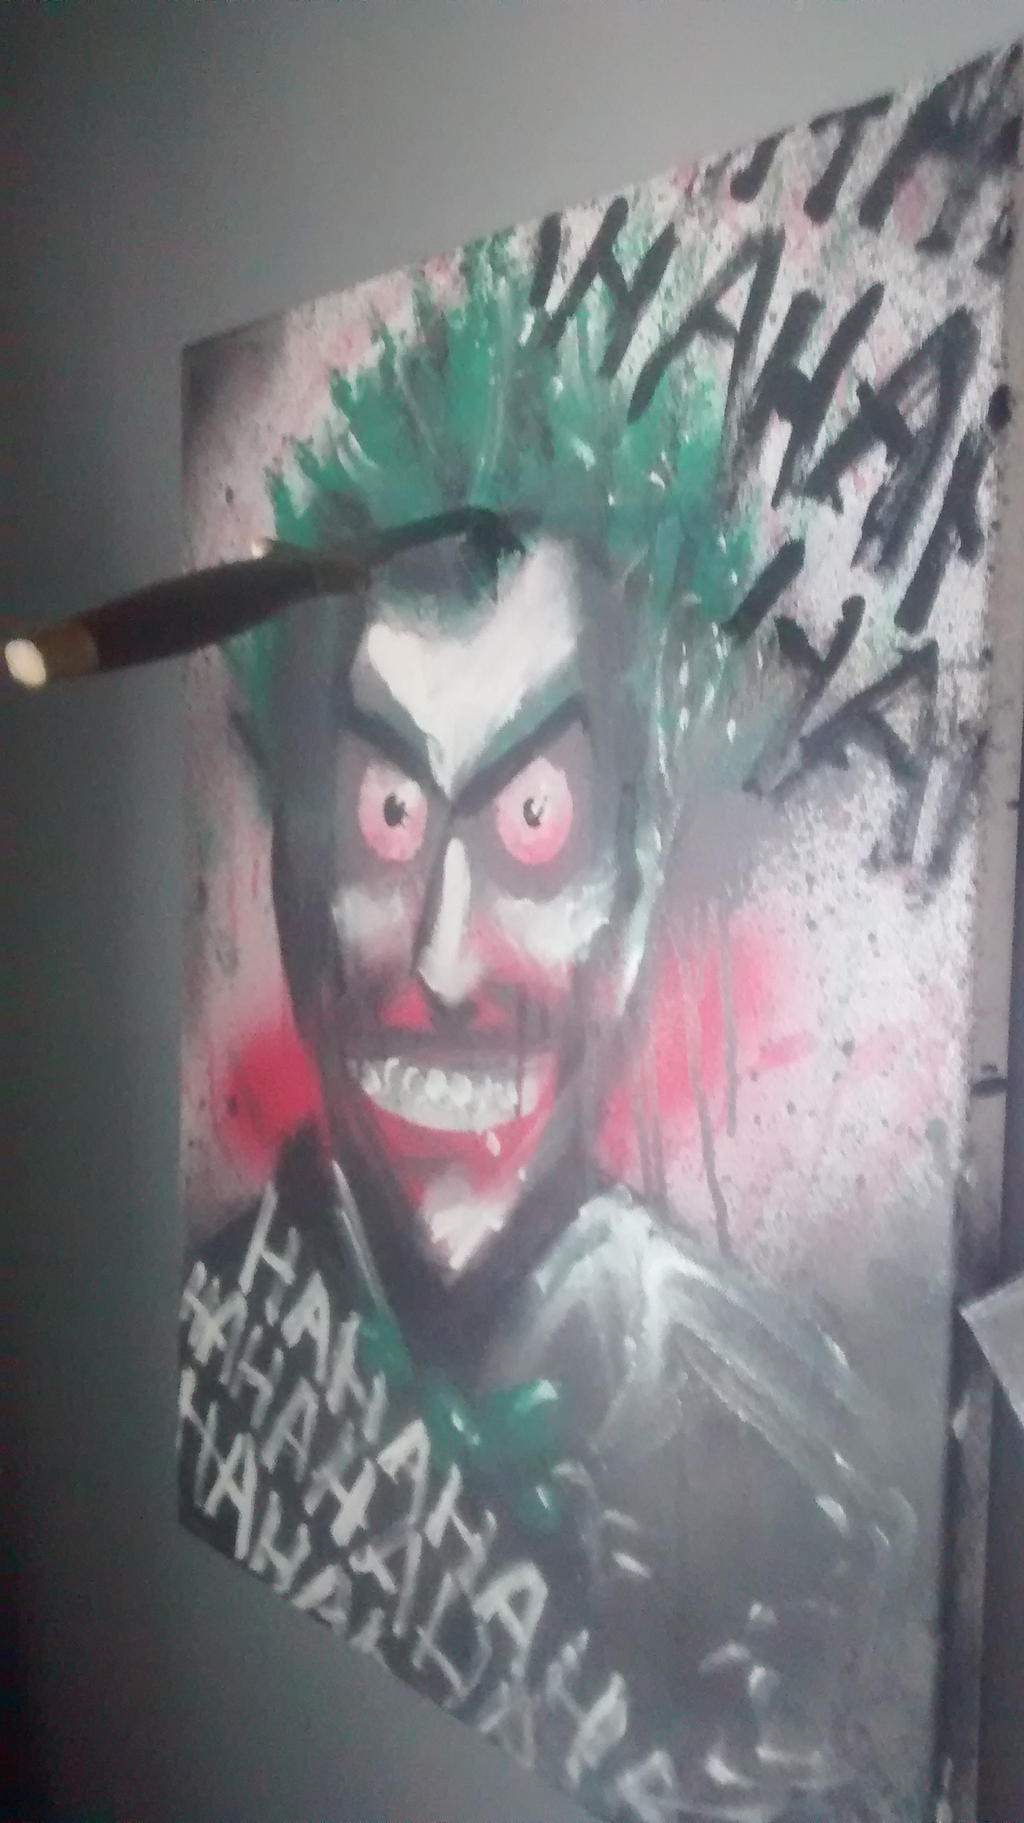 Joker painting one of three by J2040